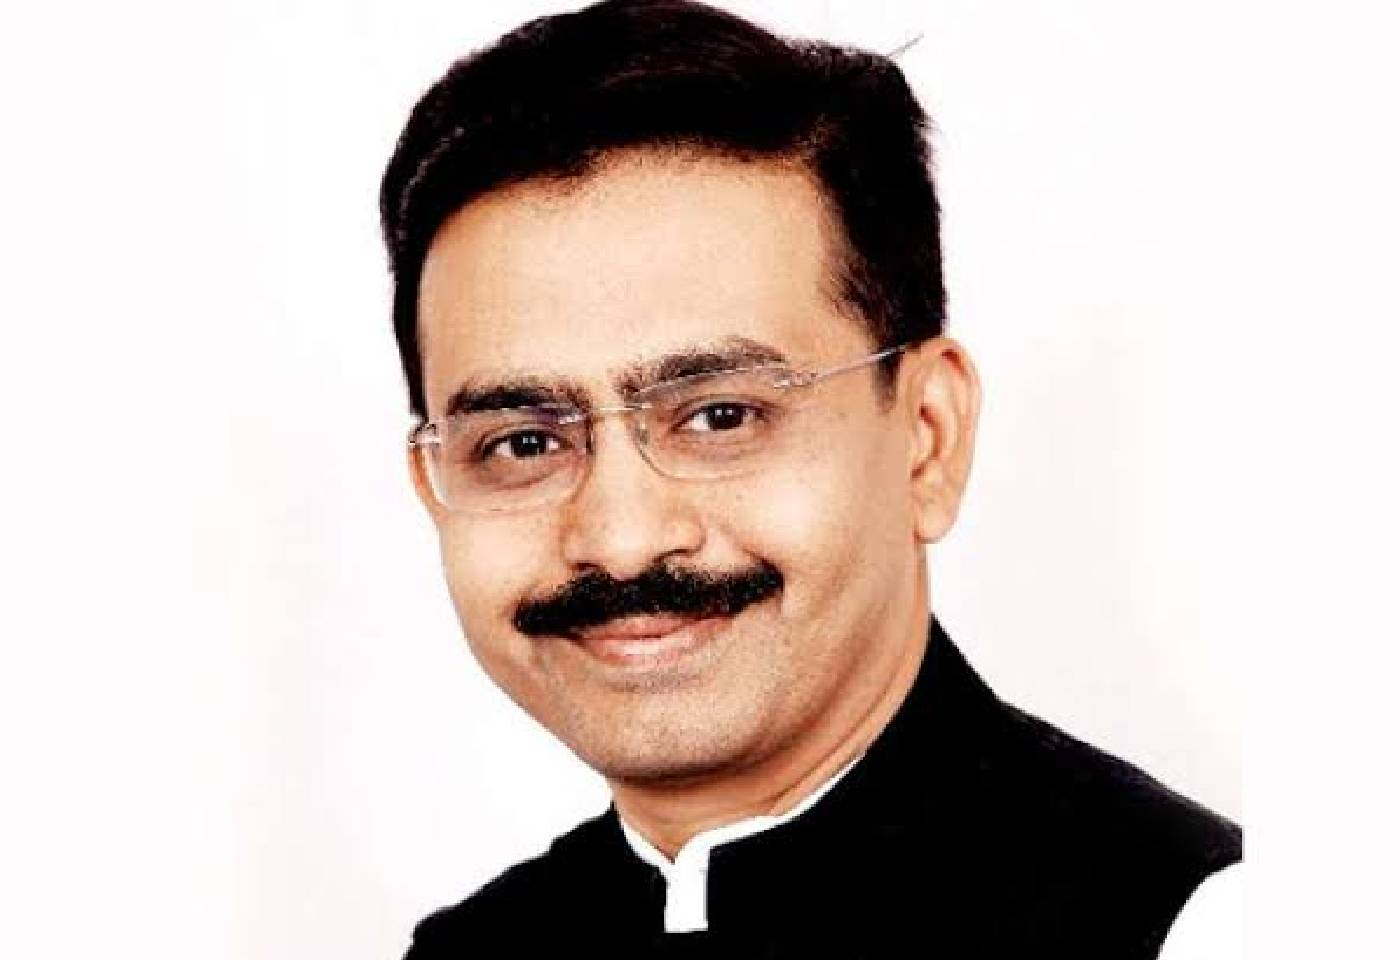 Congress MP Rajeev Satav Death Due to Covid 19 in Pune, Know About His Political career